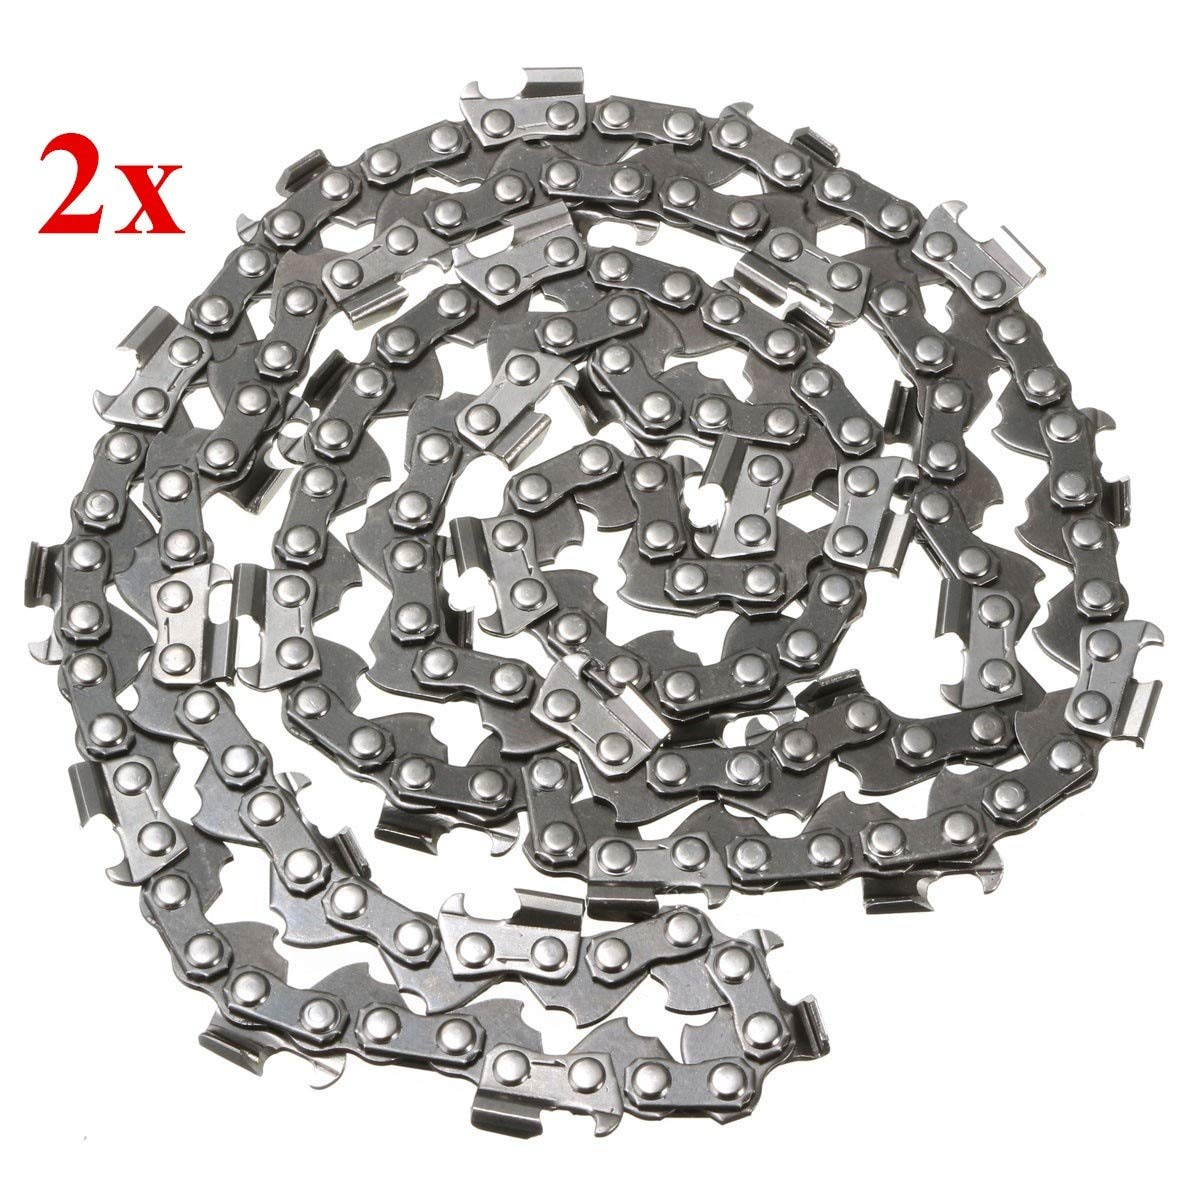 """2X 20/"""" Full Chisel Saw Chain for Jonsered Ripping Mill Chainsaws"""